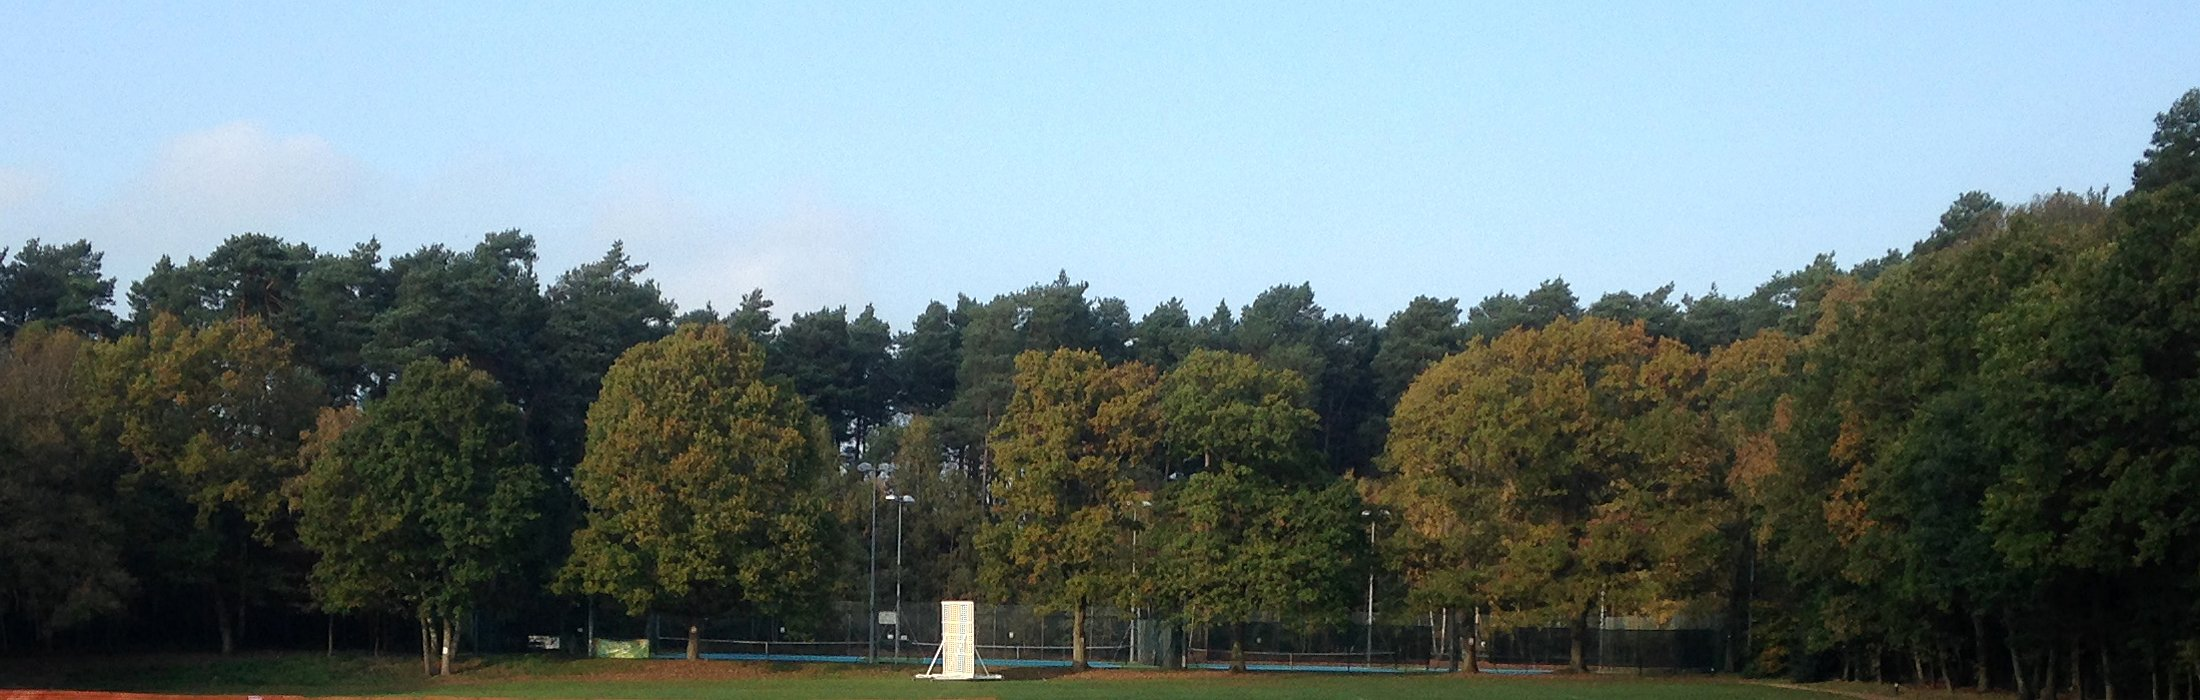 View of Crowthorne Tennis Club from across the cricket ground